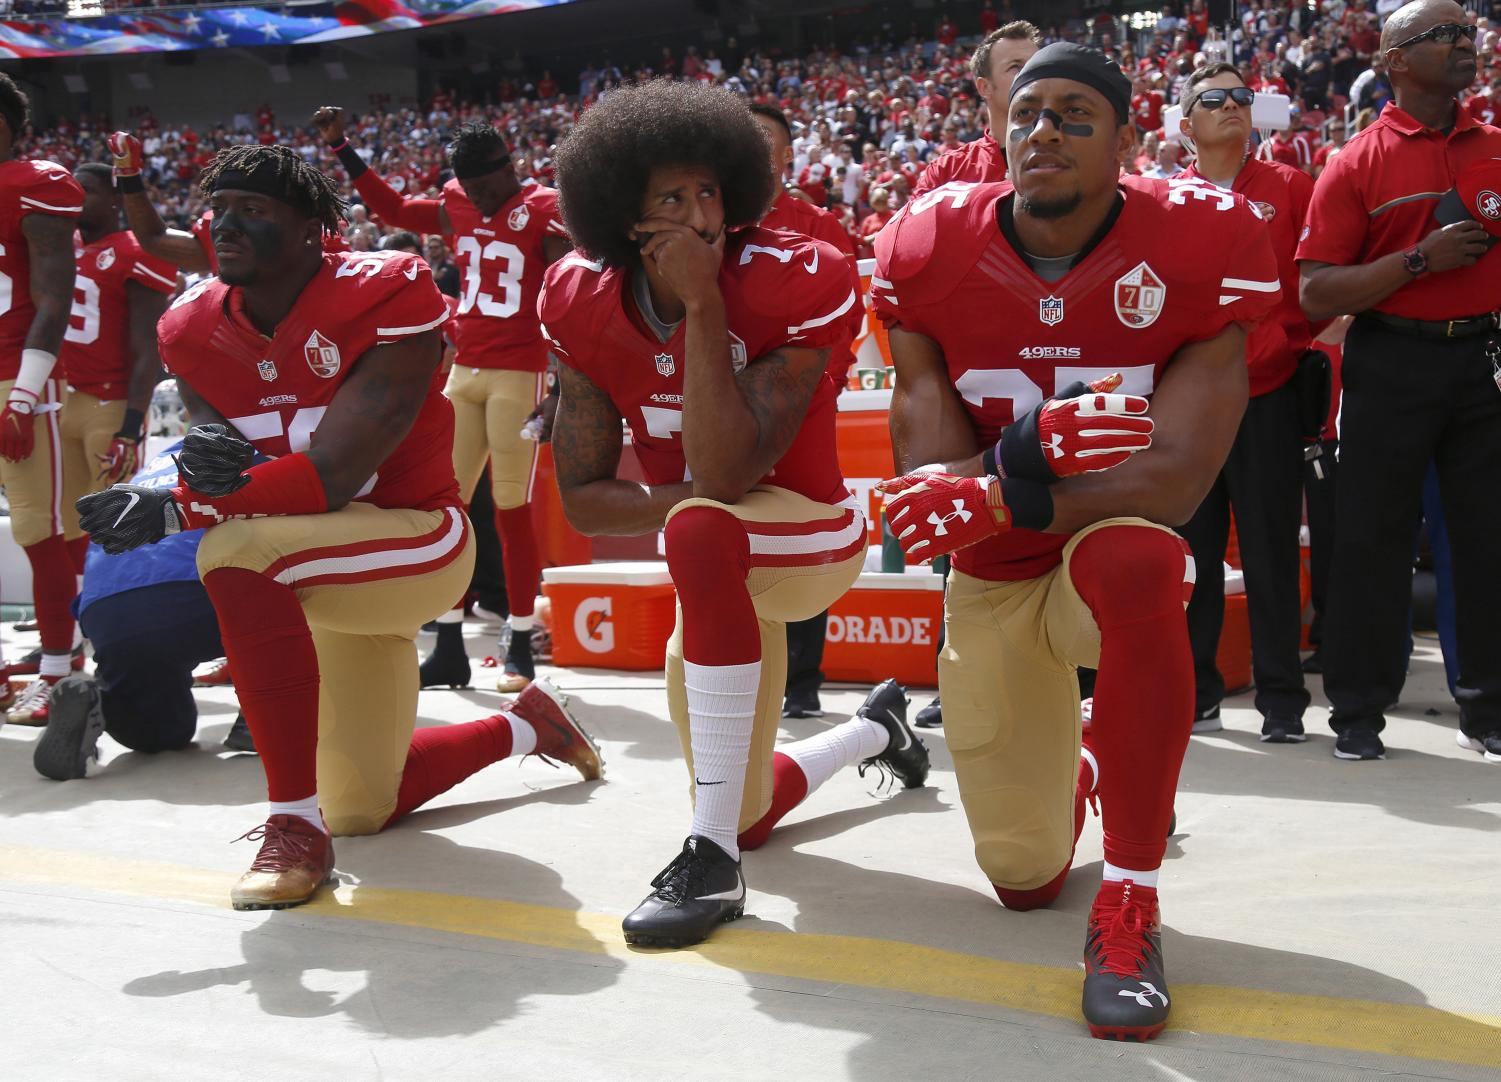 From left, The San Francisco 49ers' Eli Harold (58), Colin Kaepernick (7) and Eric Reid (35) kneel during the national anthem before their a game against the Dallas Cowboys on October 2, 2016, at Levi's Stadium in Santa Clara, Calif. (Nhat V. Meyer/Bay Area News Group/TNS)